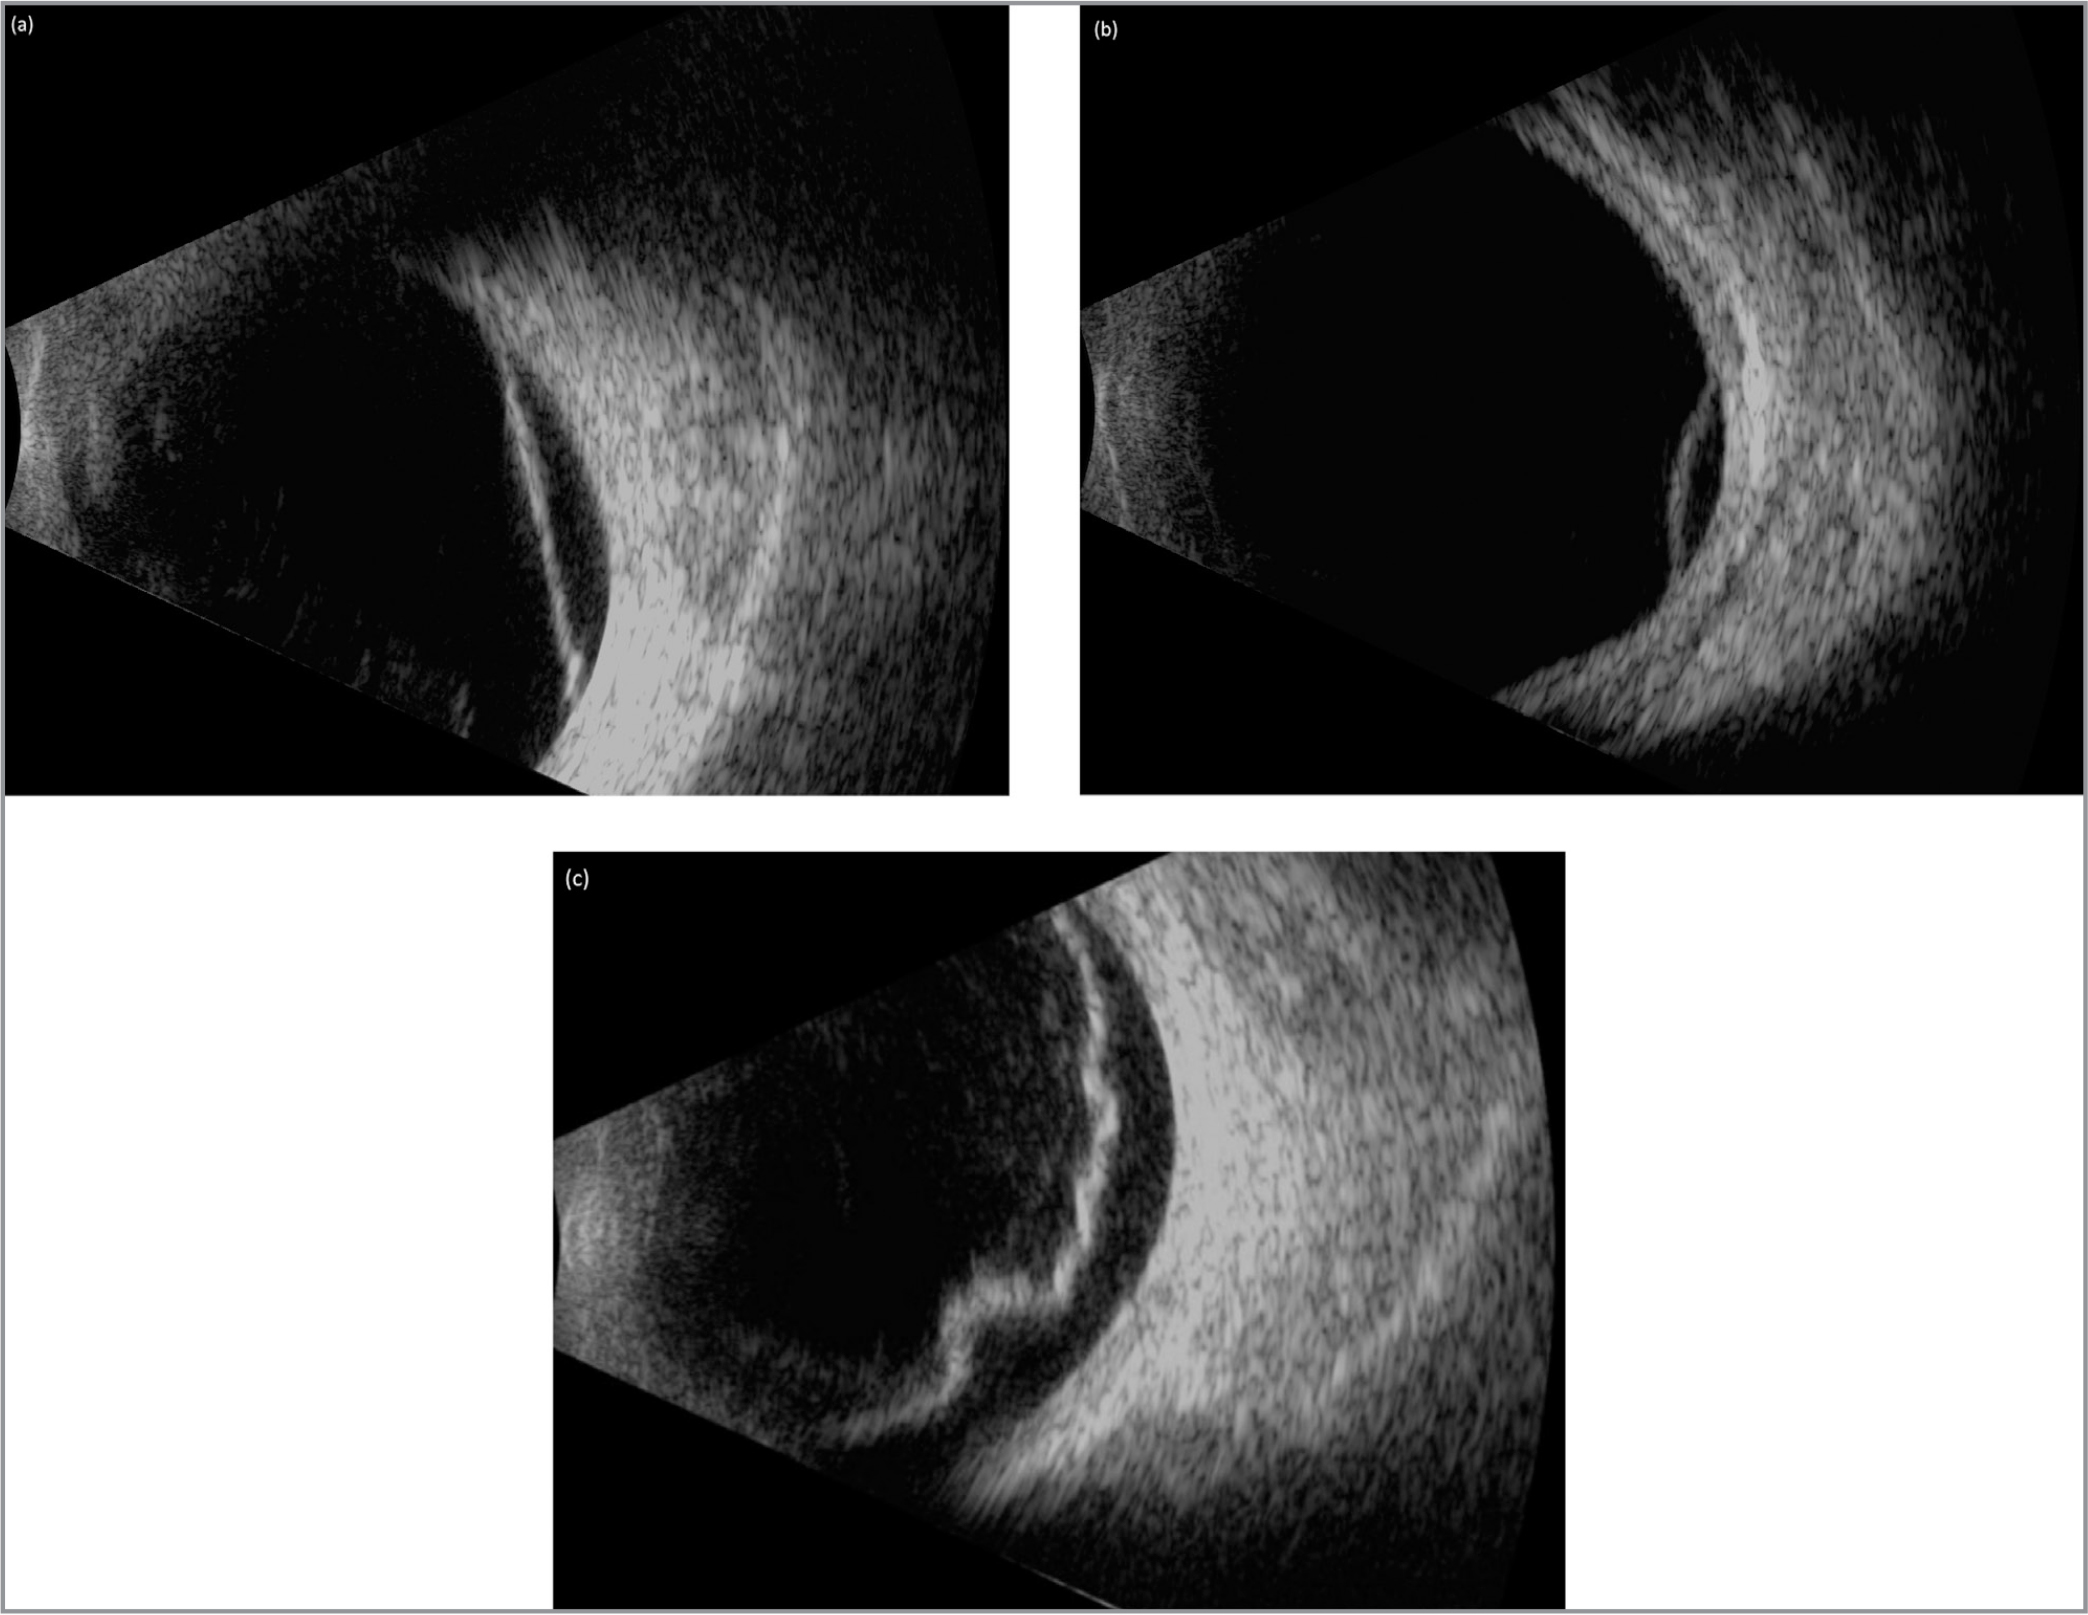 Sample images for ultrasonography B-scan retinal structures categorized as flat, membranous-shaped (a), dome-shaped (b), and irregular membranous-shaped (c).